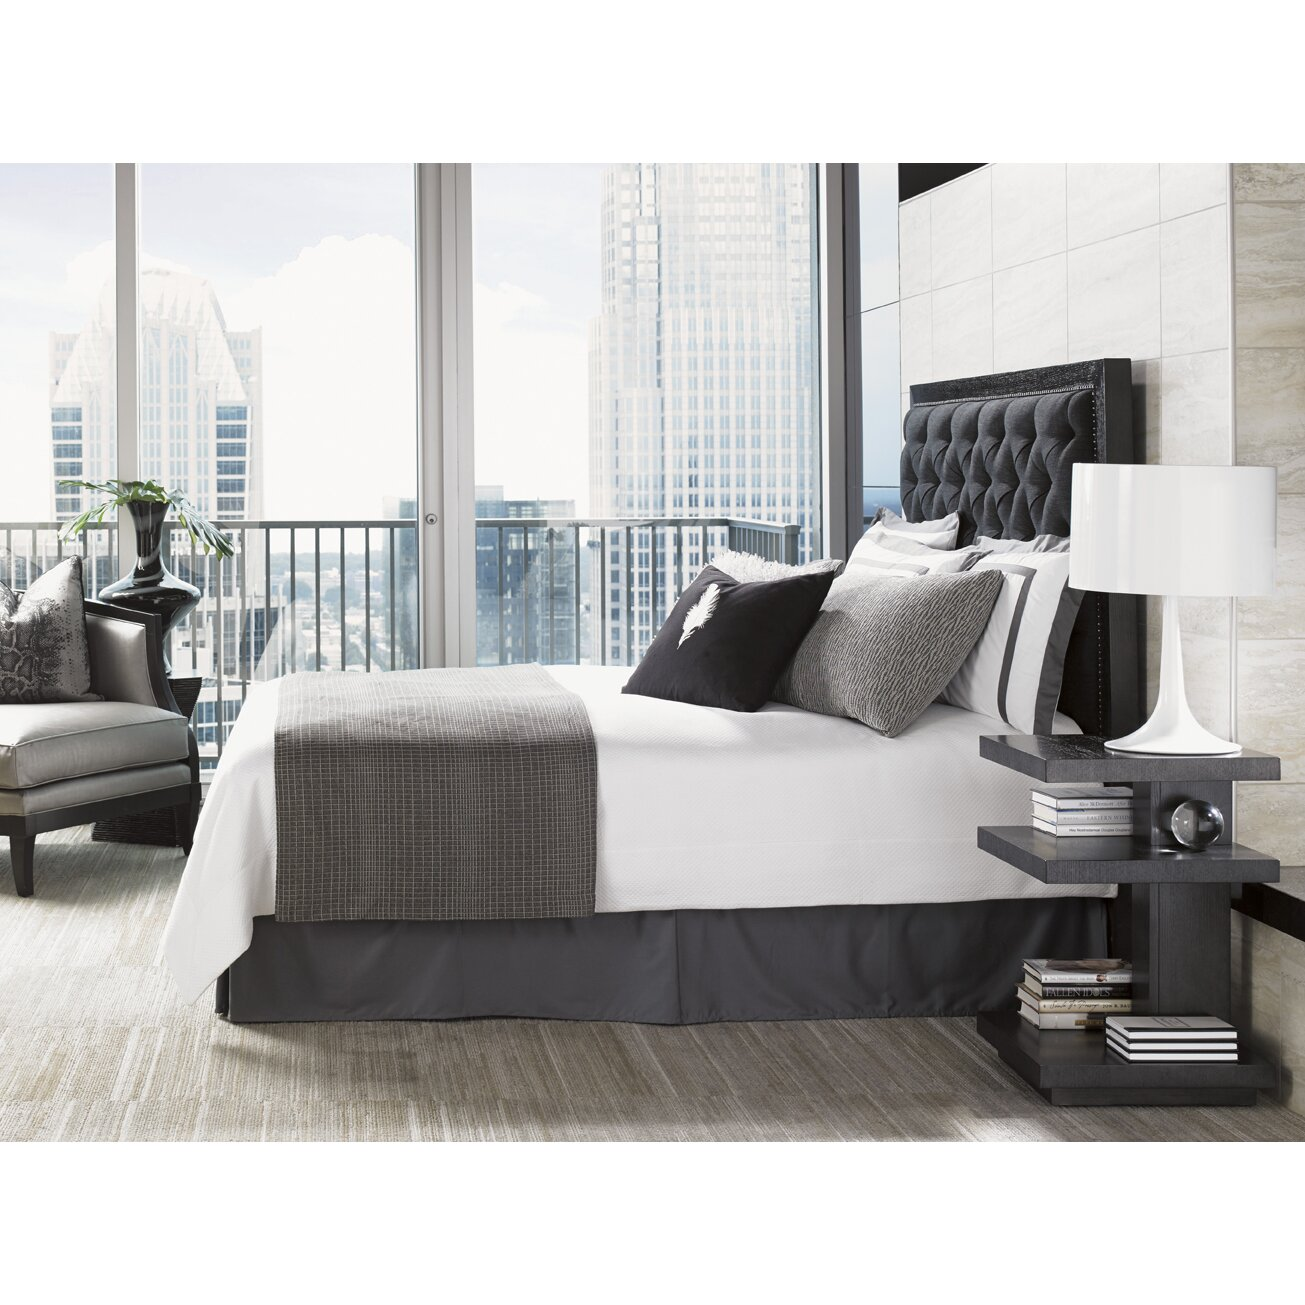 lexington carrera bedroom platform customizable bedroom